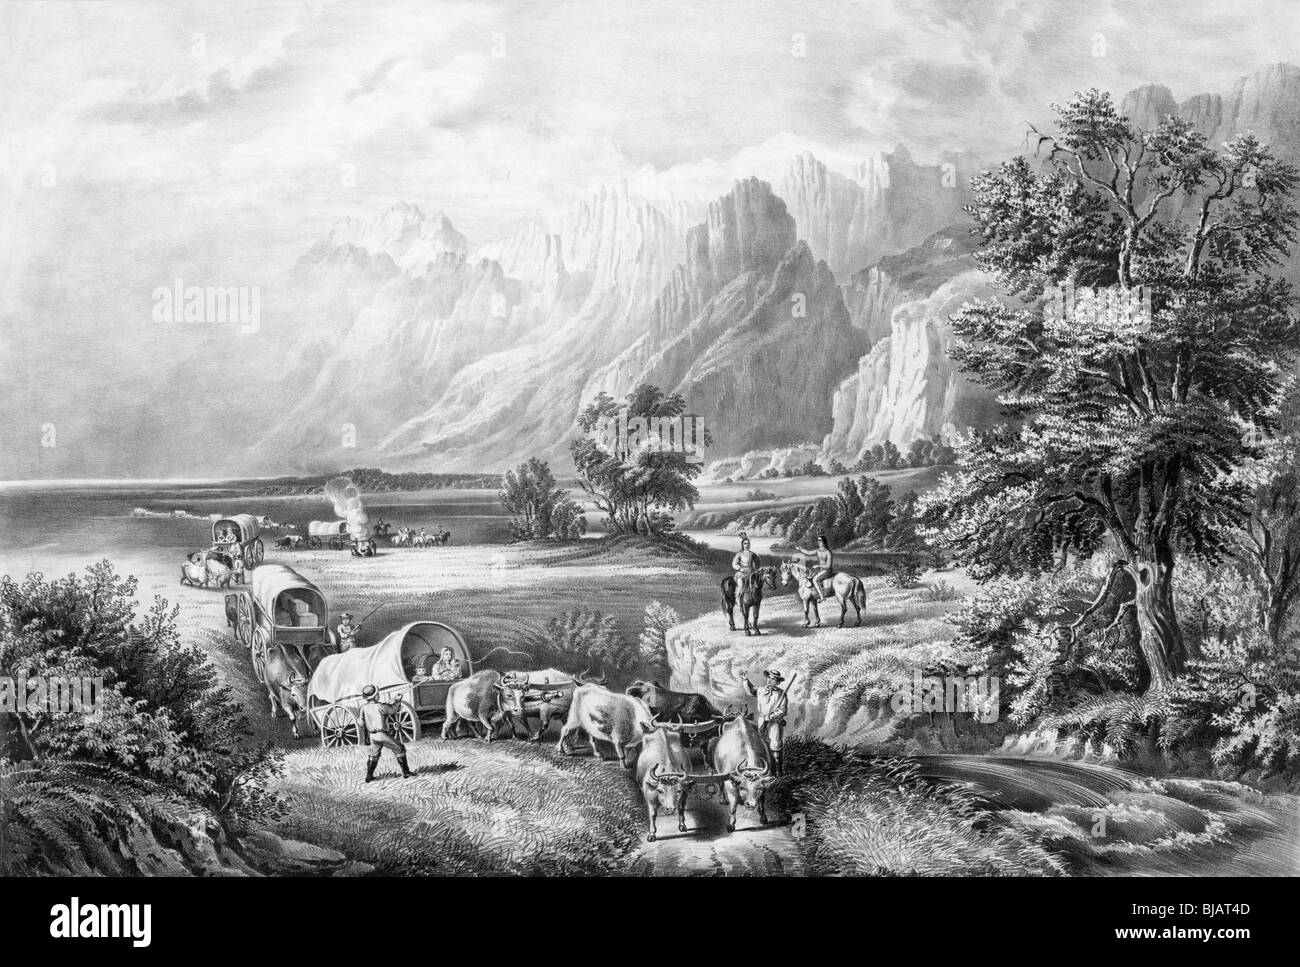 Black and white lithograph print circa 1866 entitled 'The Rocky Mountains - emigrants crossing the plains'. - Stock Image